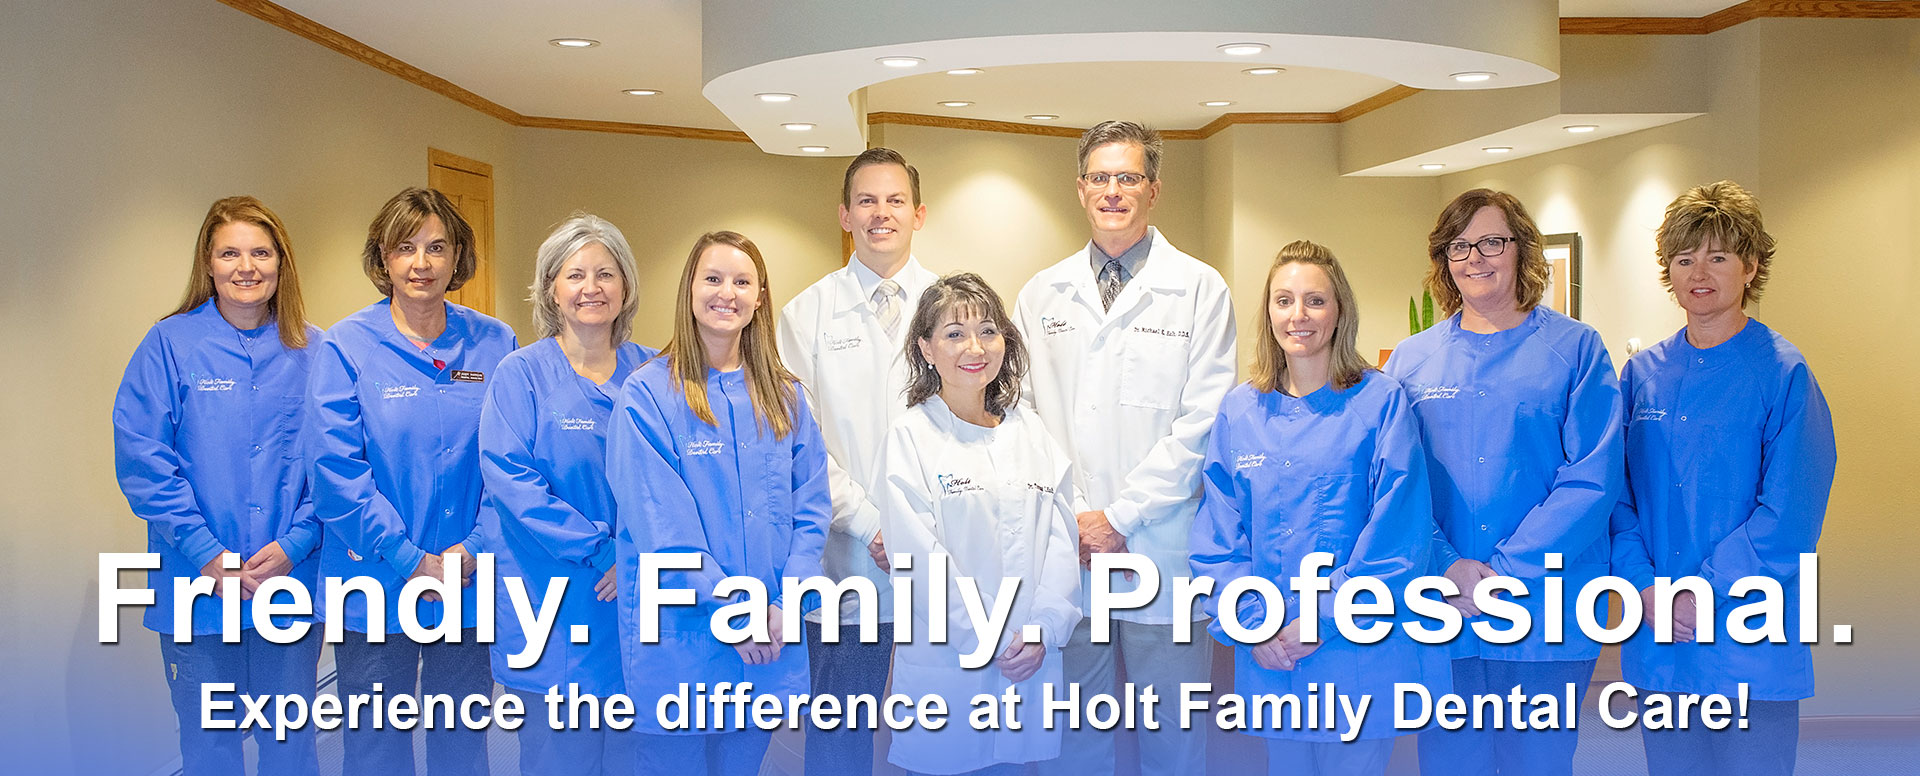 Holt Family Dental Care Team Photo